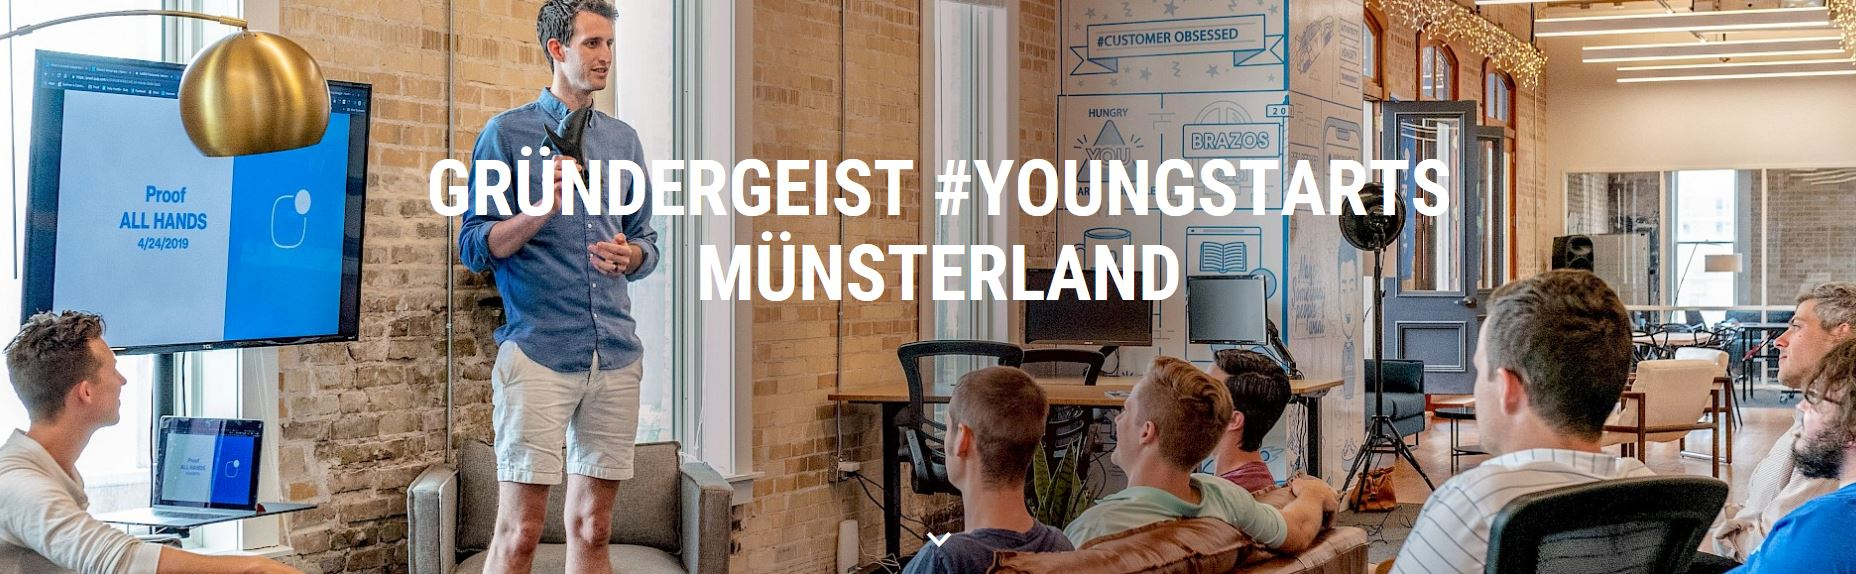 #YOUNGSTARTS